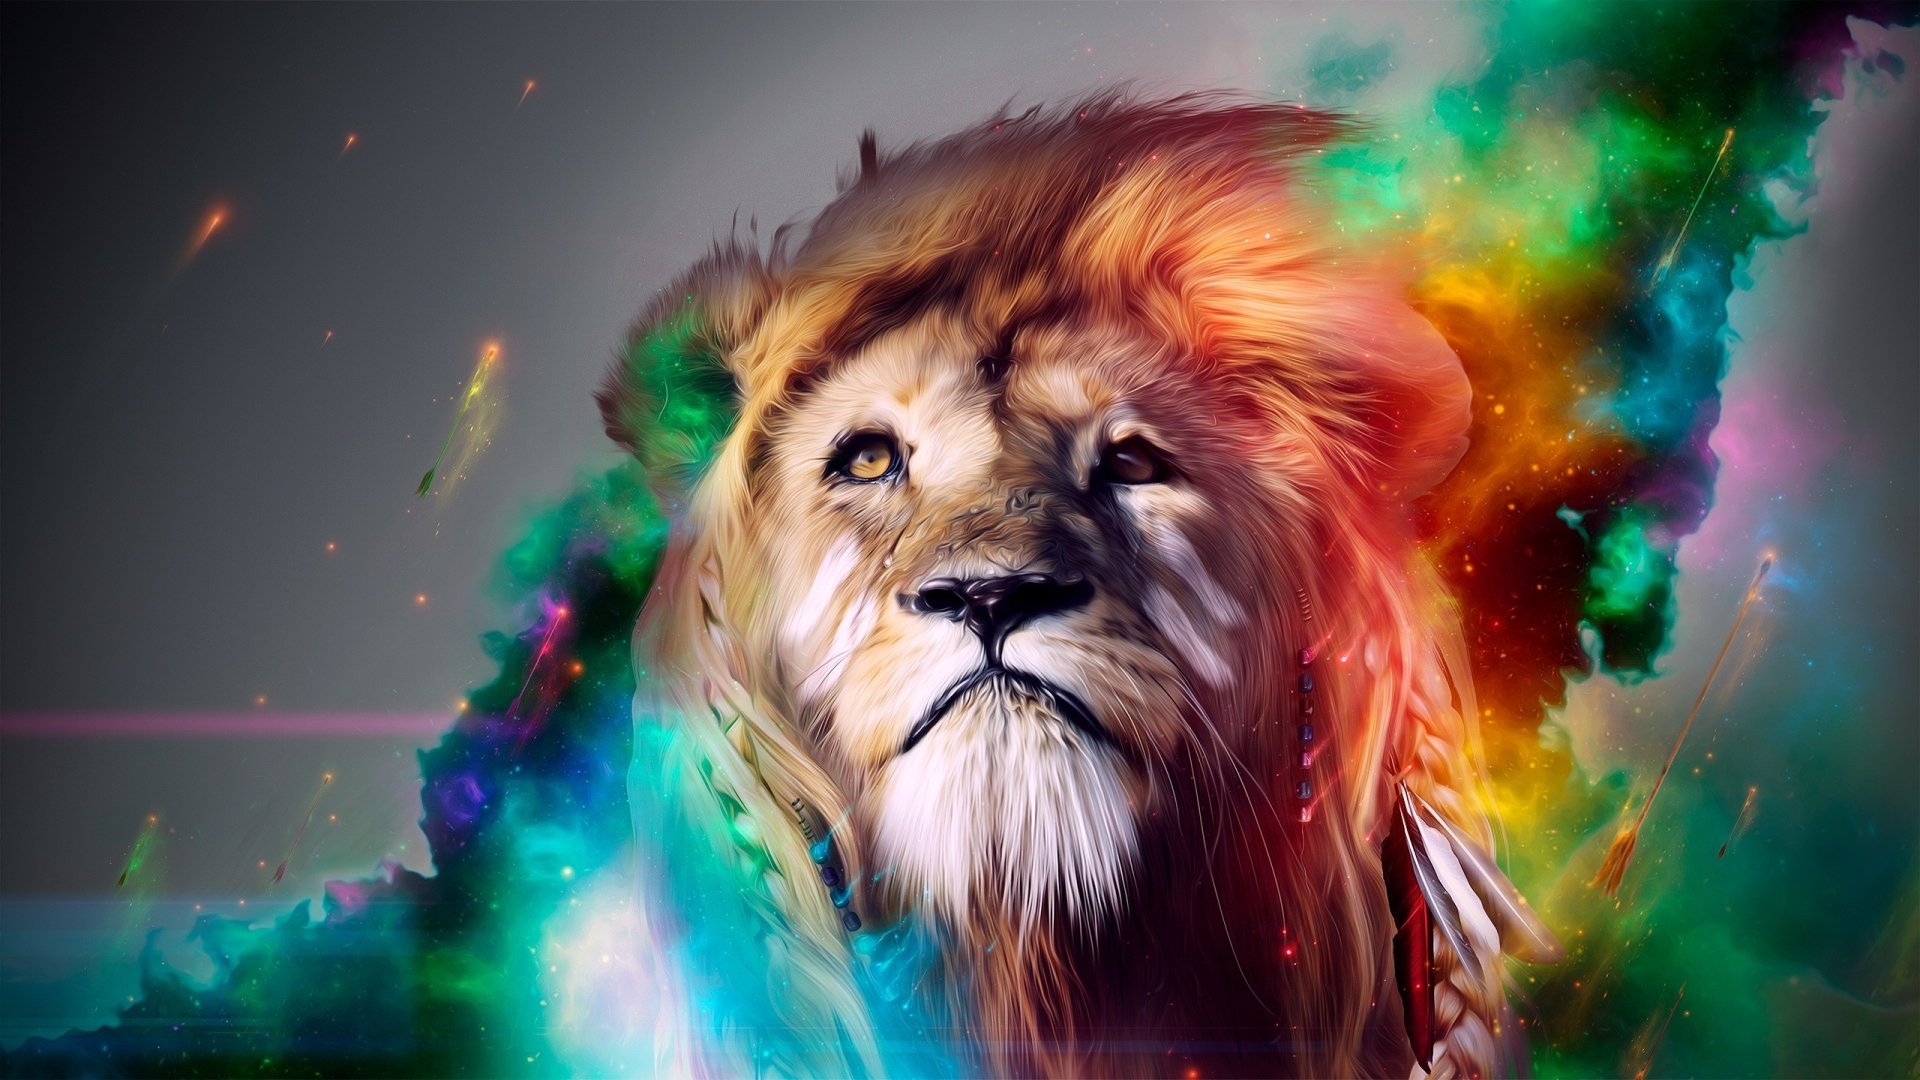 1144 Lion Hd Wallpapers Background Images Wallpaper Abyss